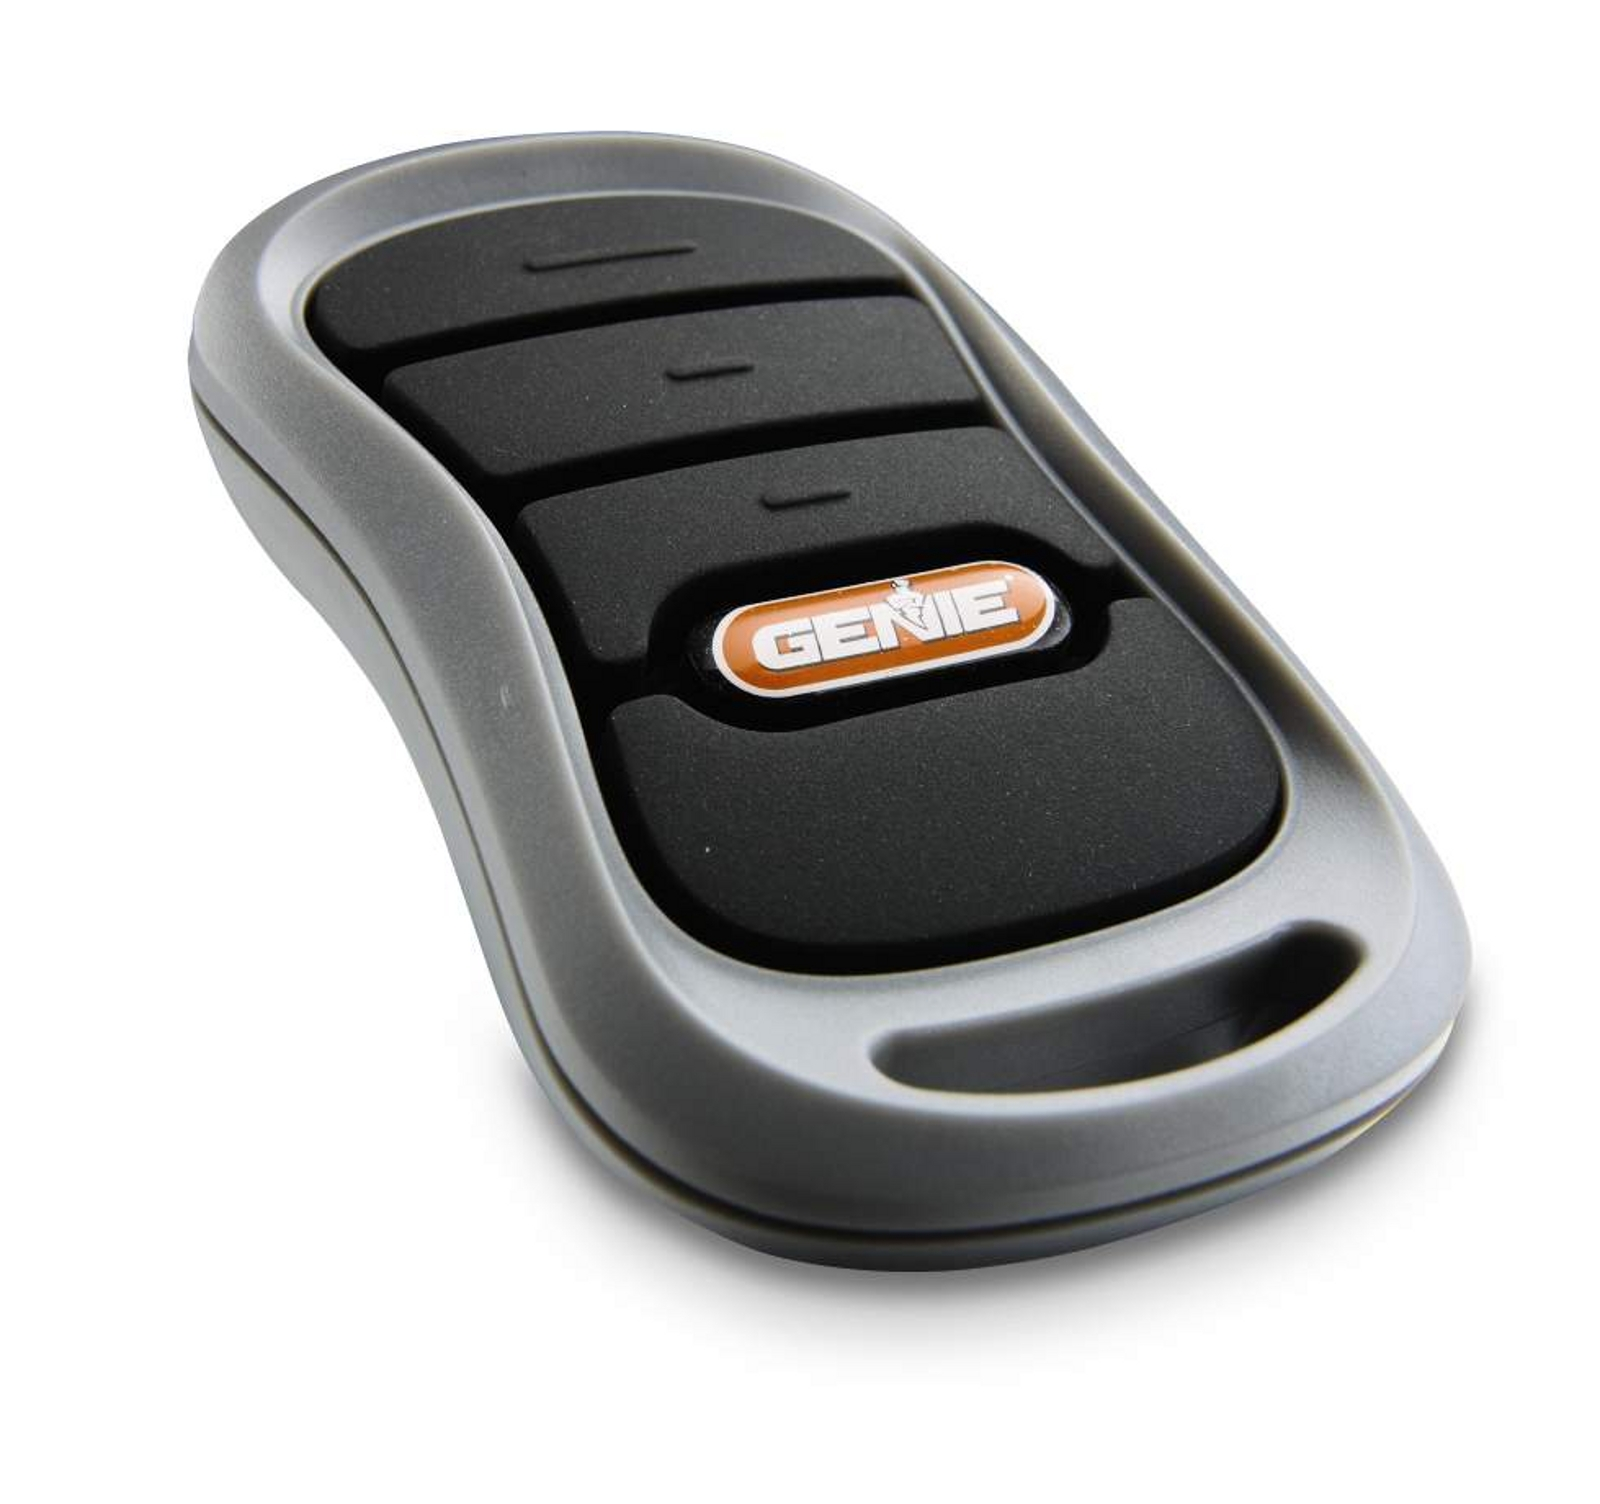 Genie Intellicode 2 - Standard 3 Button Remote